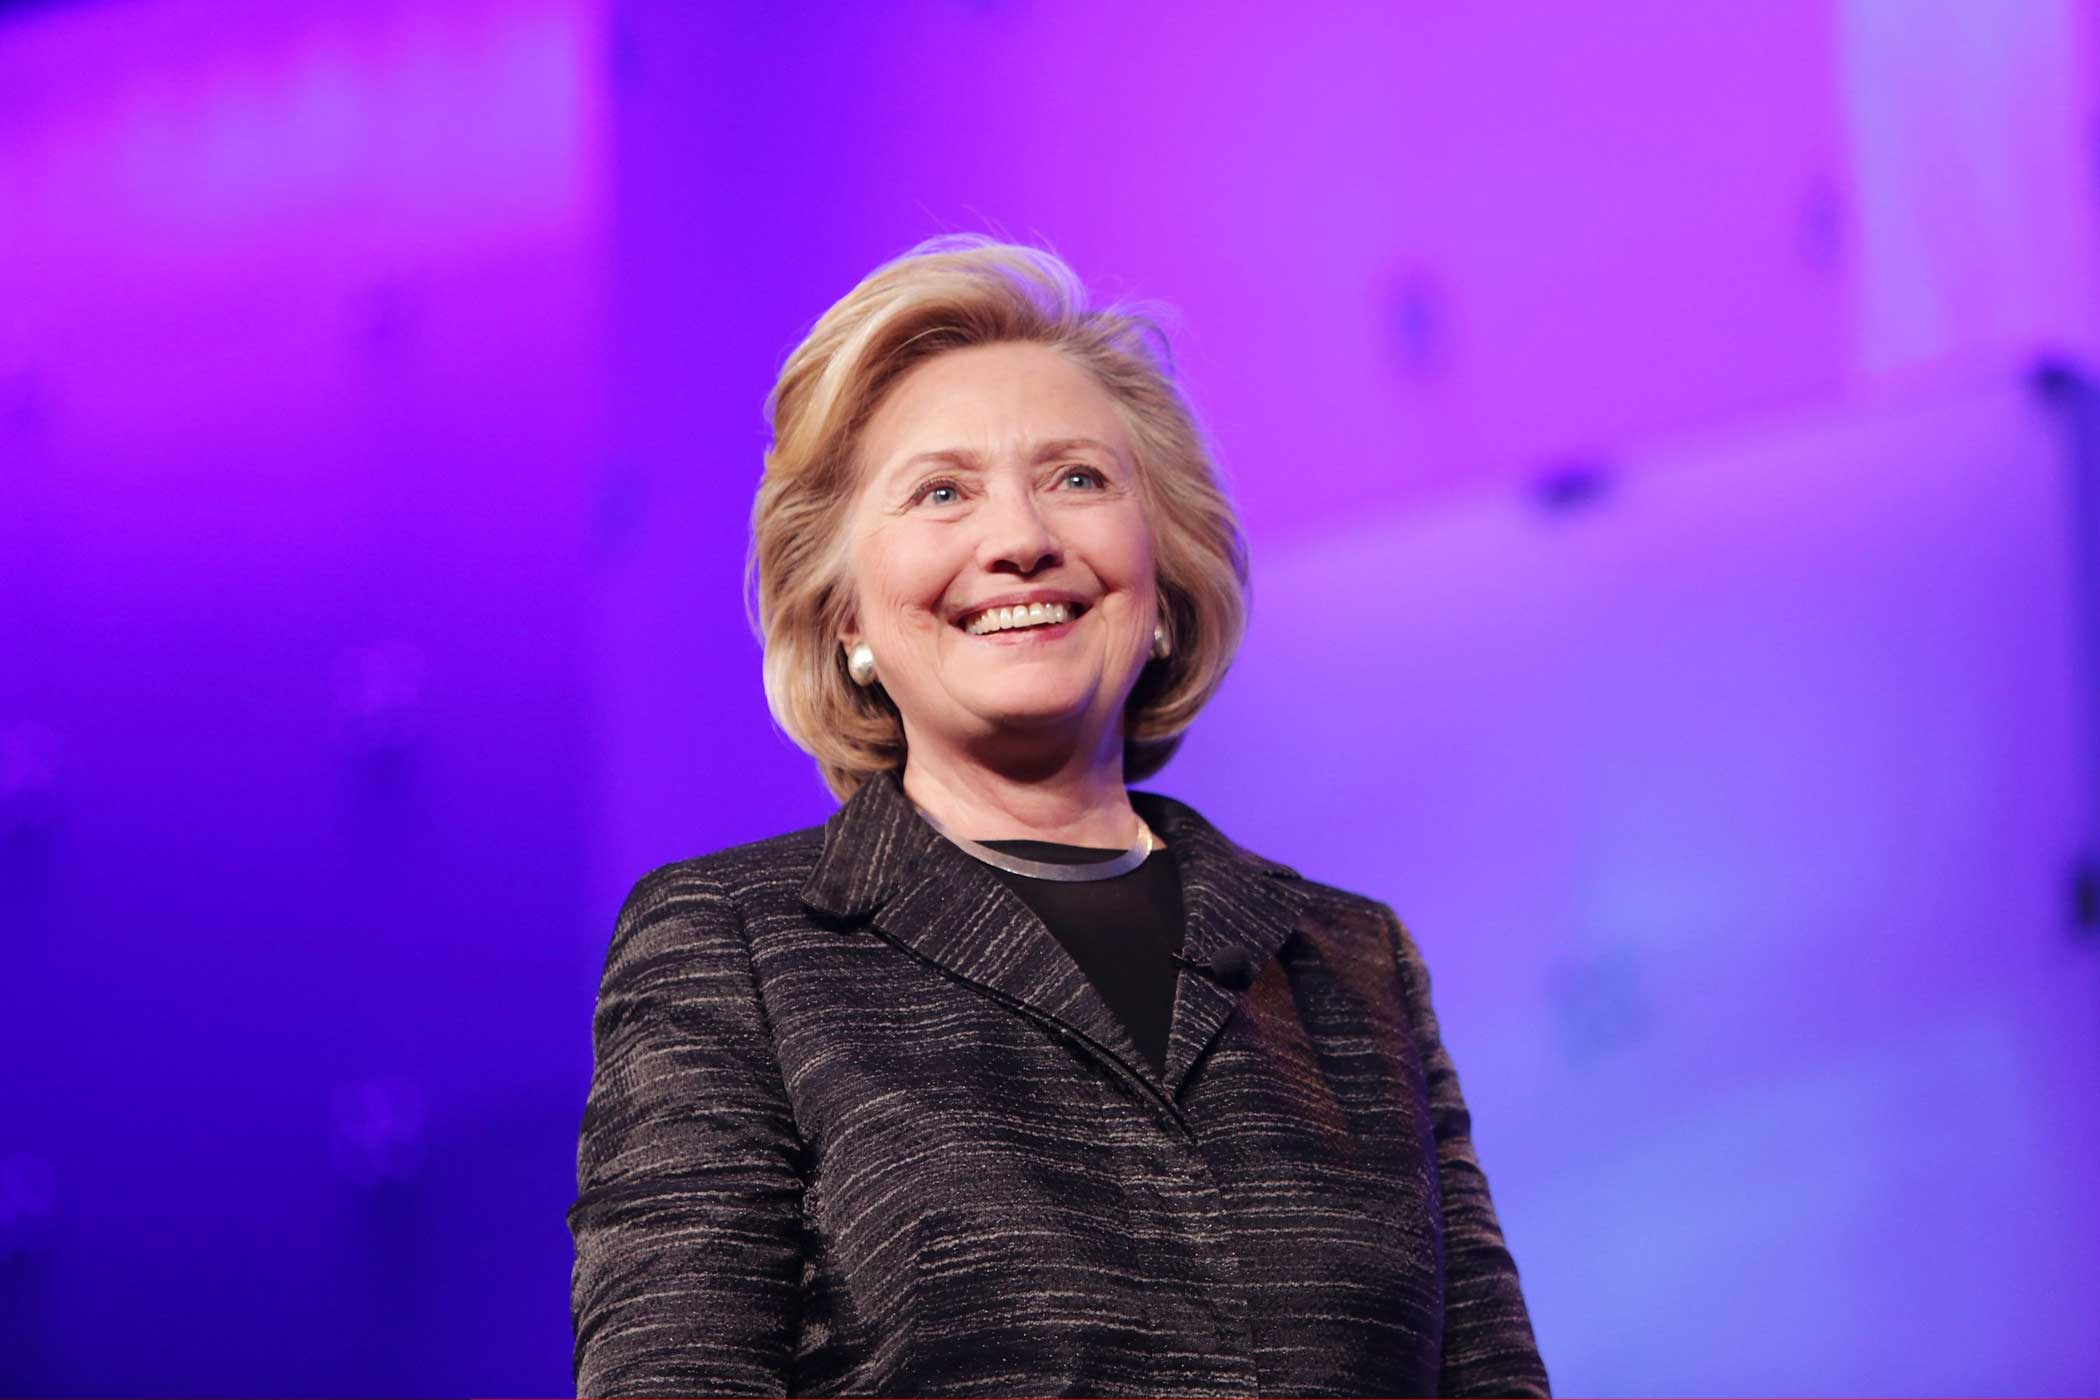 Former United States Secretary of State Hillary Clinton gives the keynote speech during LeadOn:Watermark's Silicon Valley Conference For Women at Santa Clara Convention Center on Feb. 24, 2015 in Santa Clara, California.